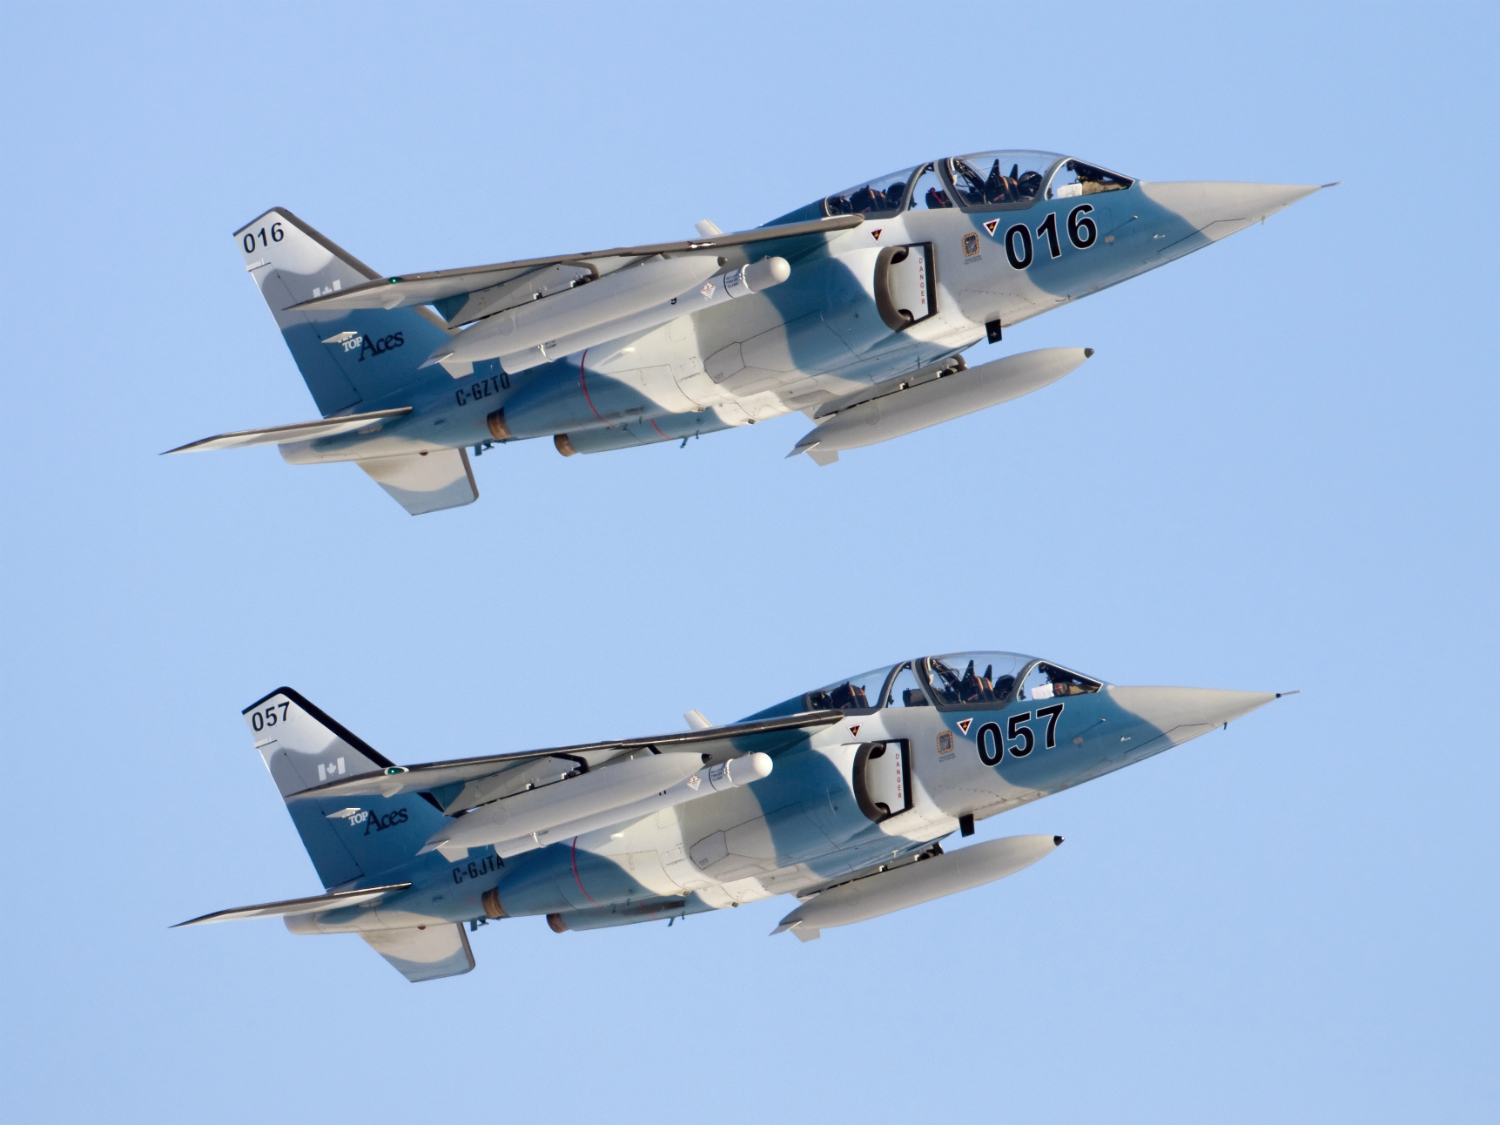 Two Alpha Jets in flight